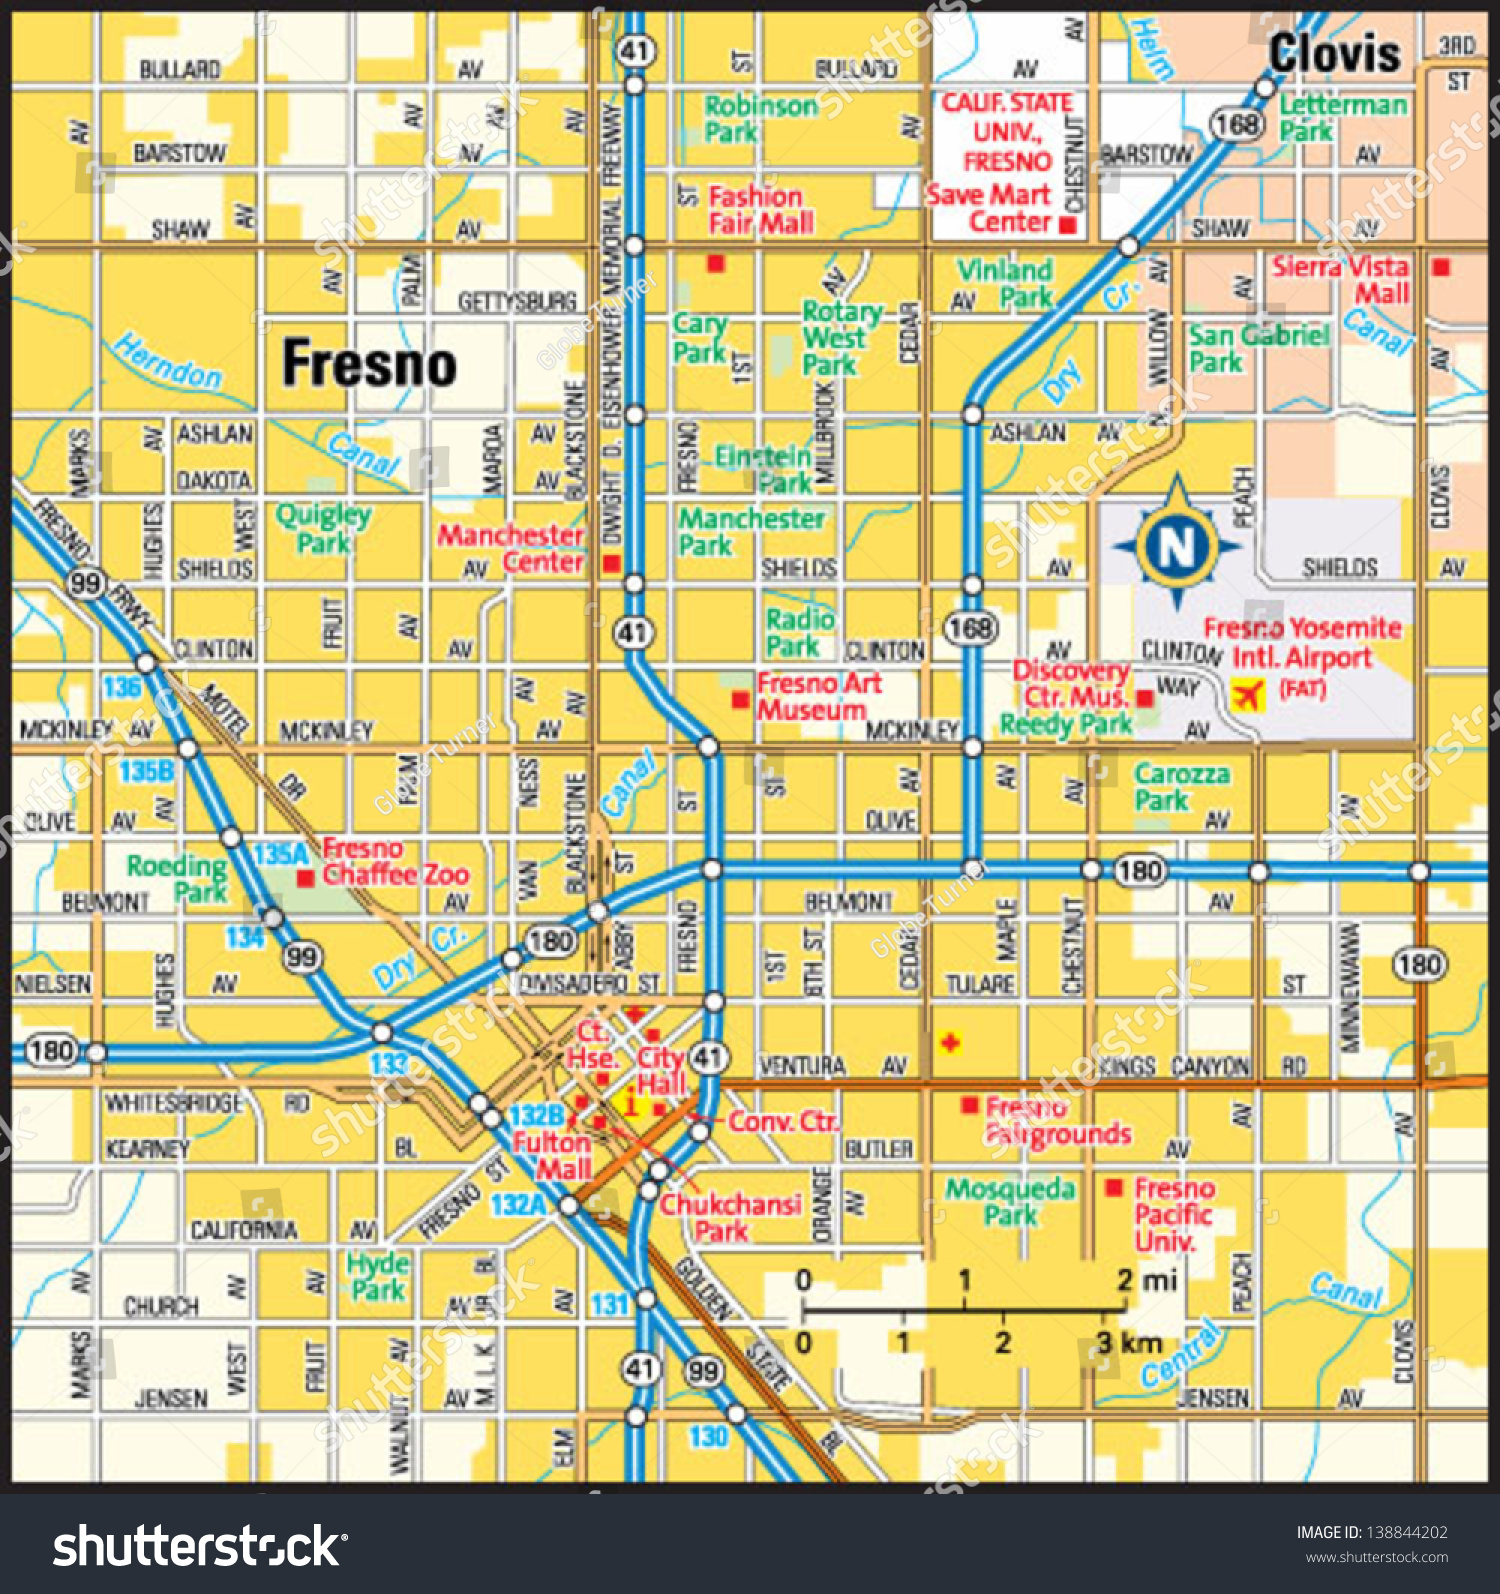 fresno california area map stock vector shutterstock